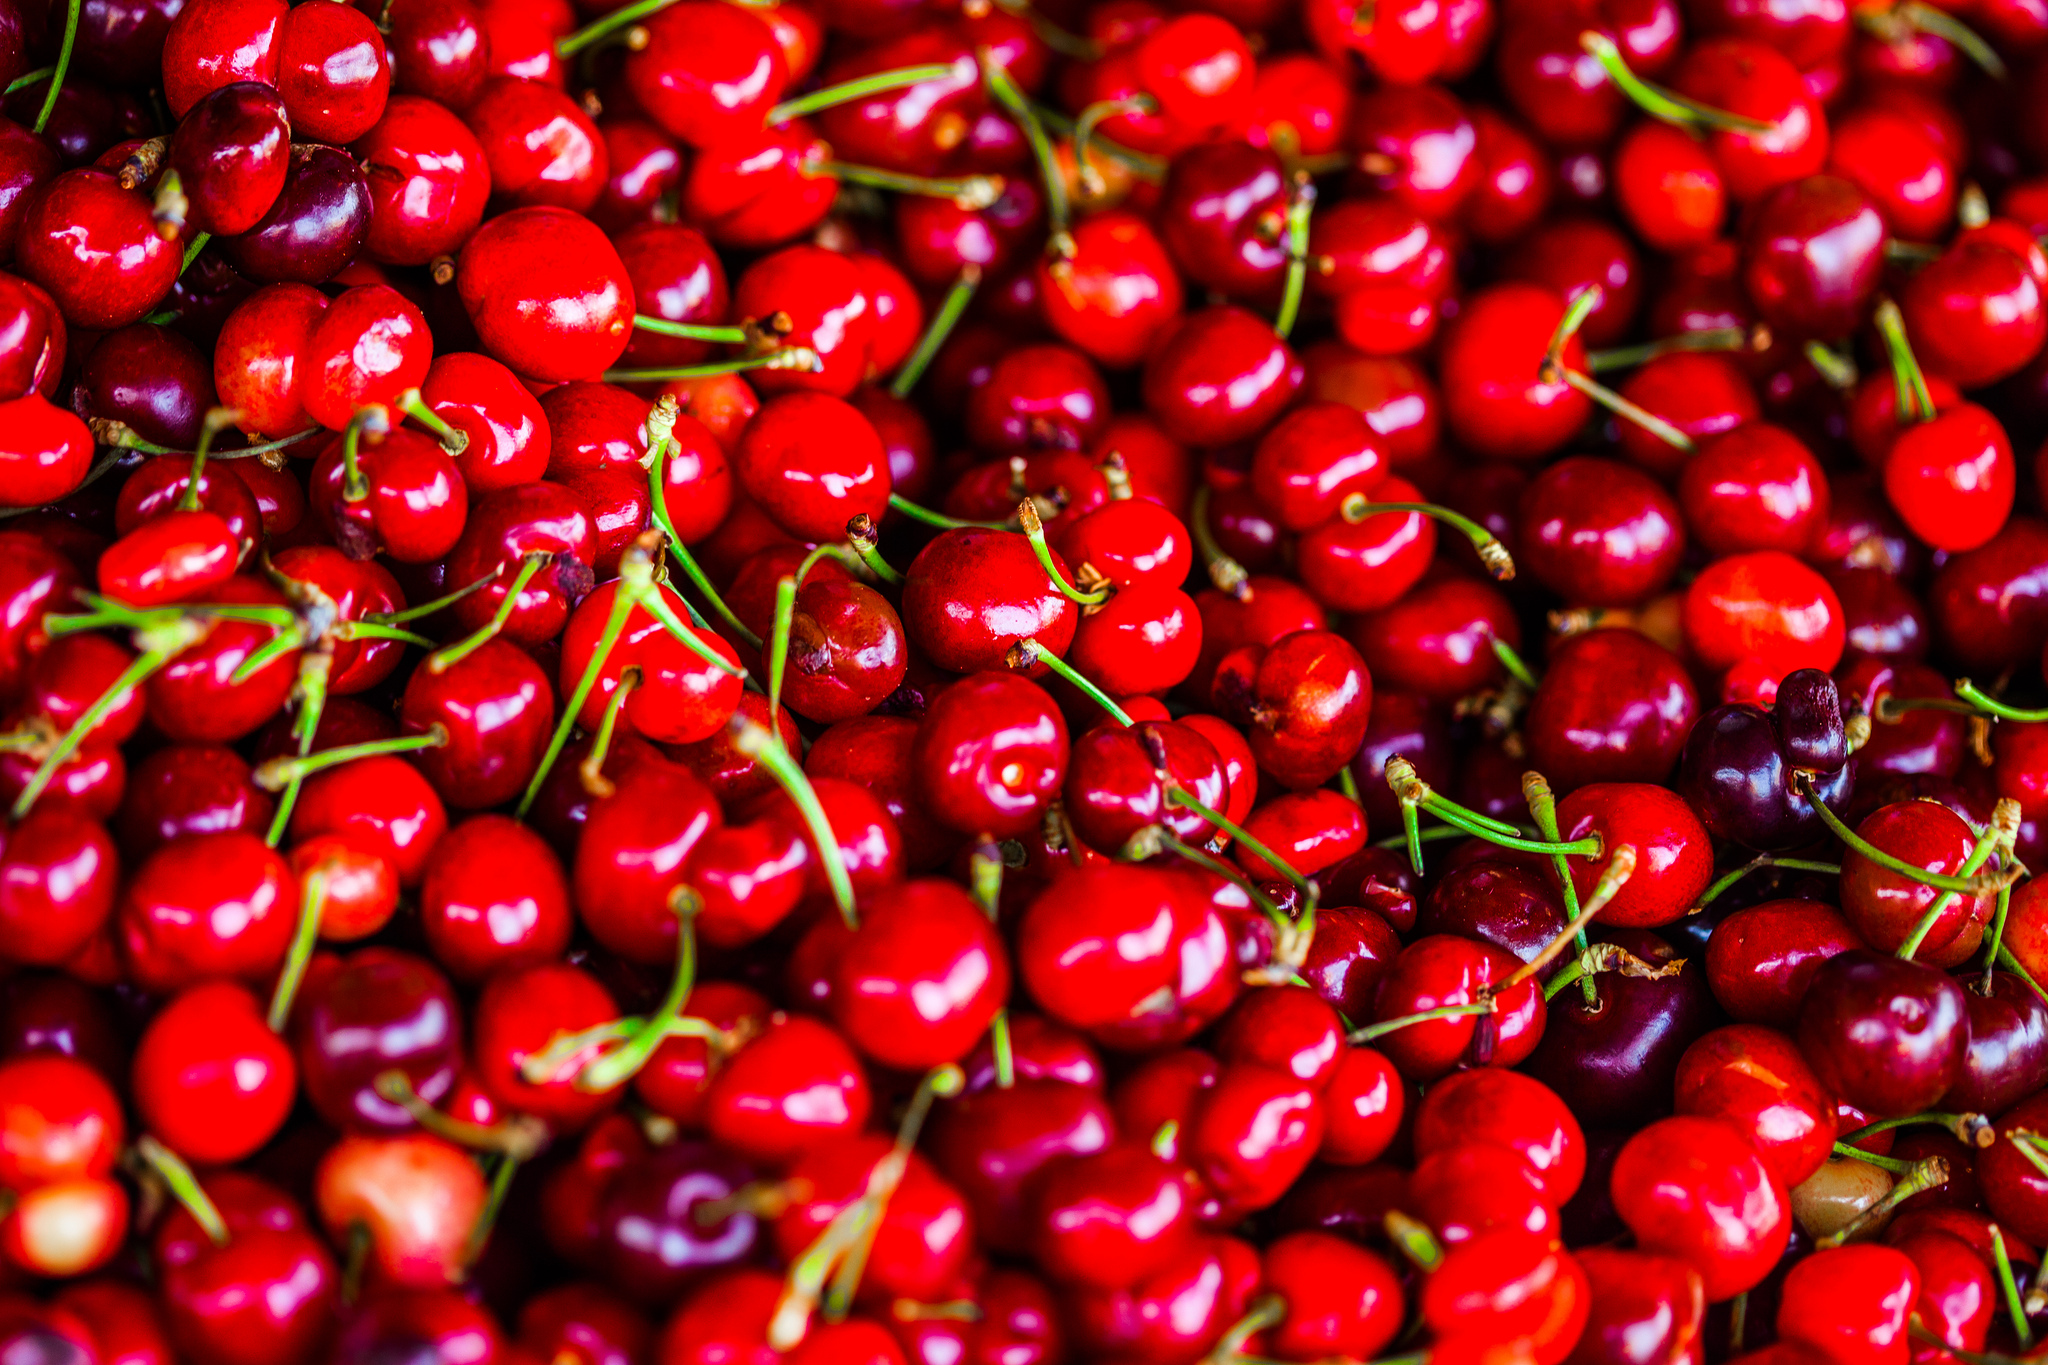 Wide angle photograph of red cherries